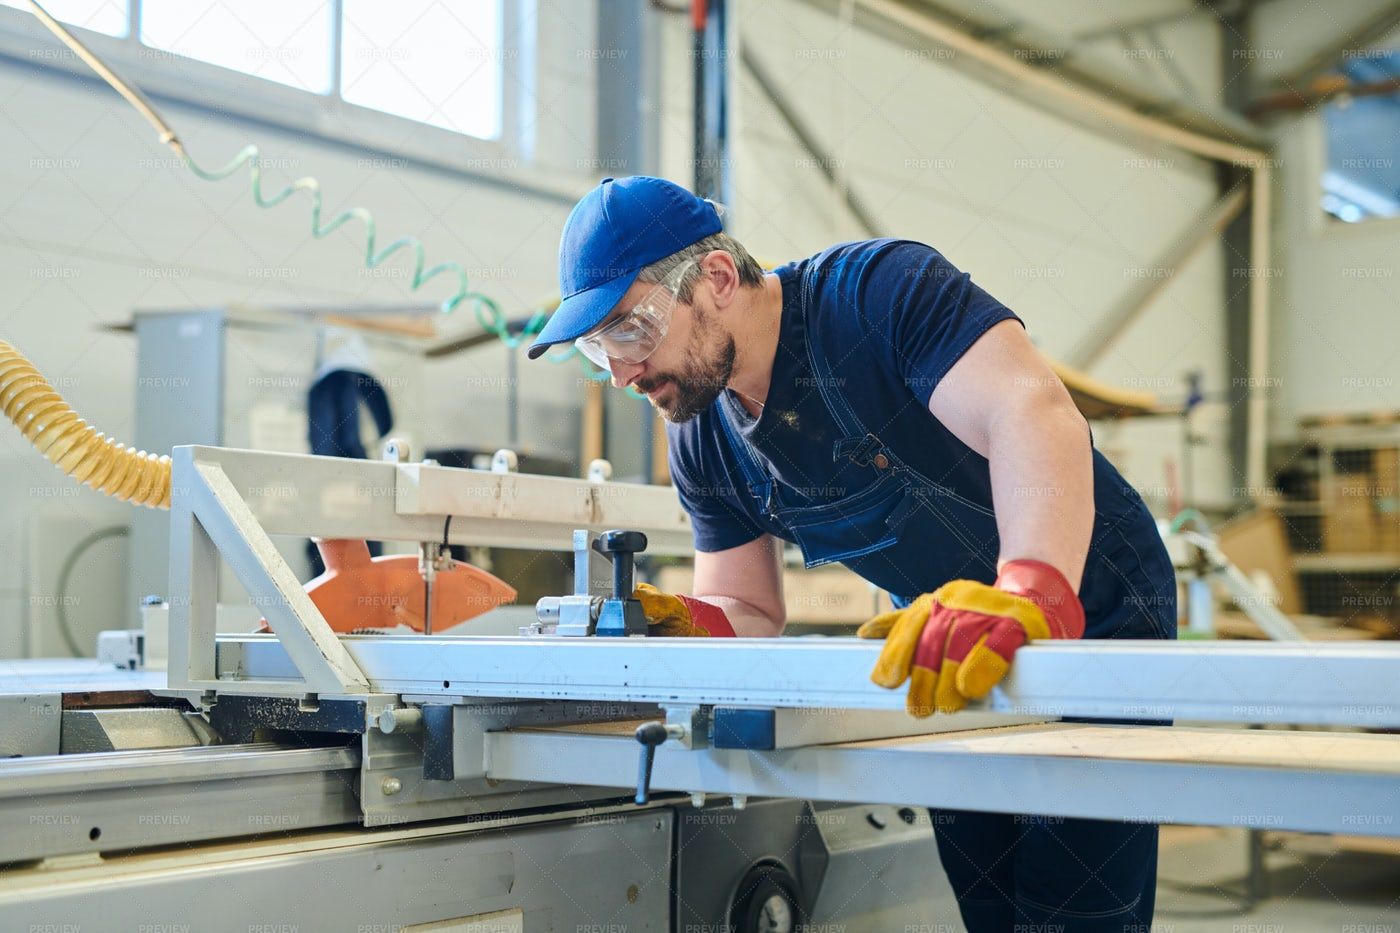 Worker Of Furniture Factory: Stock Photos